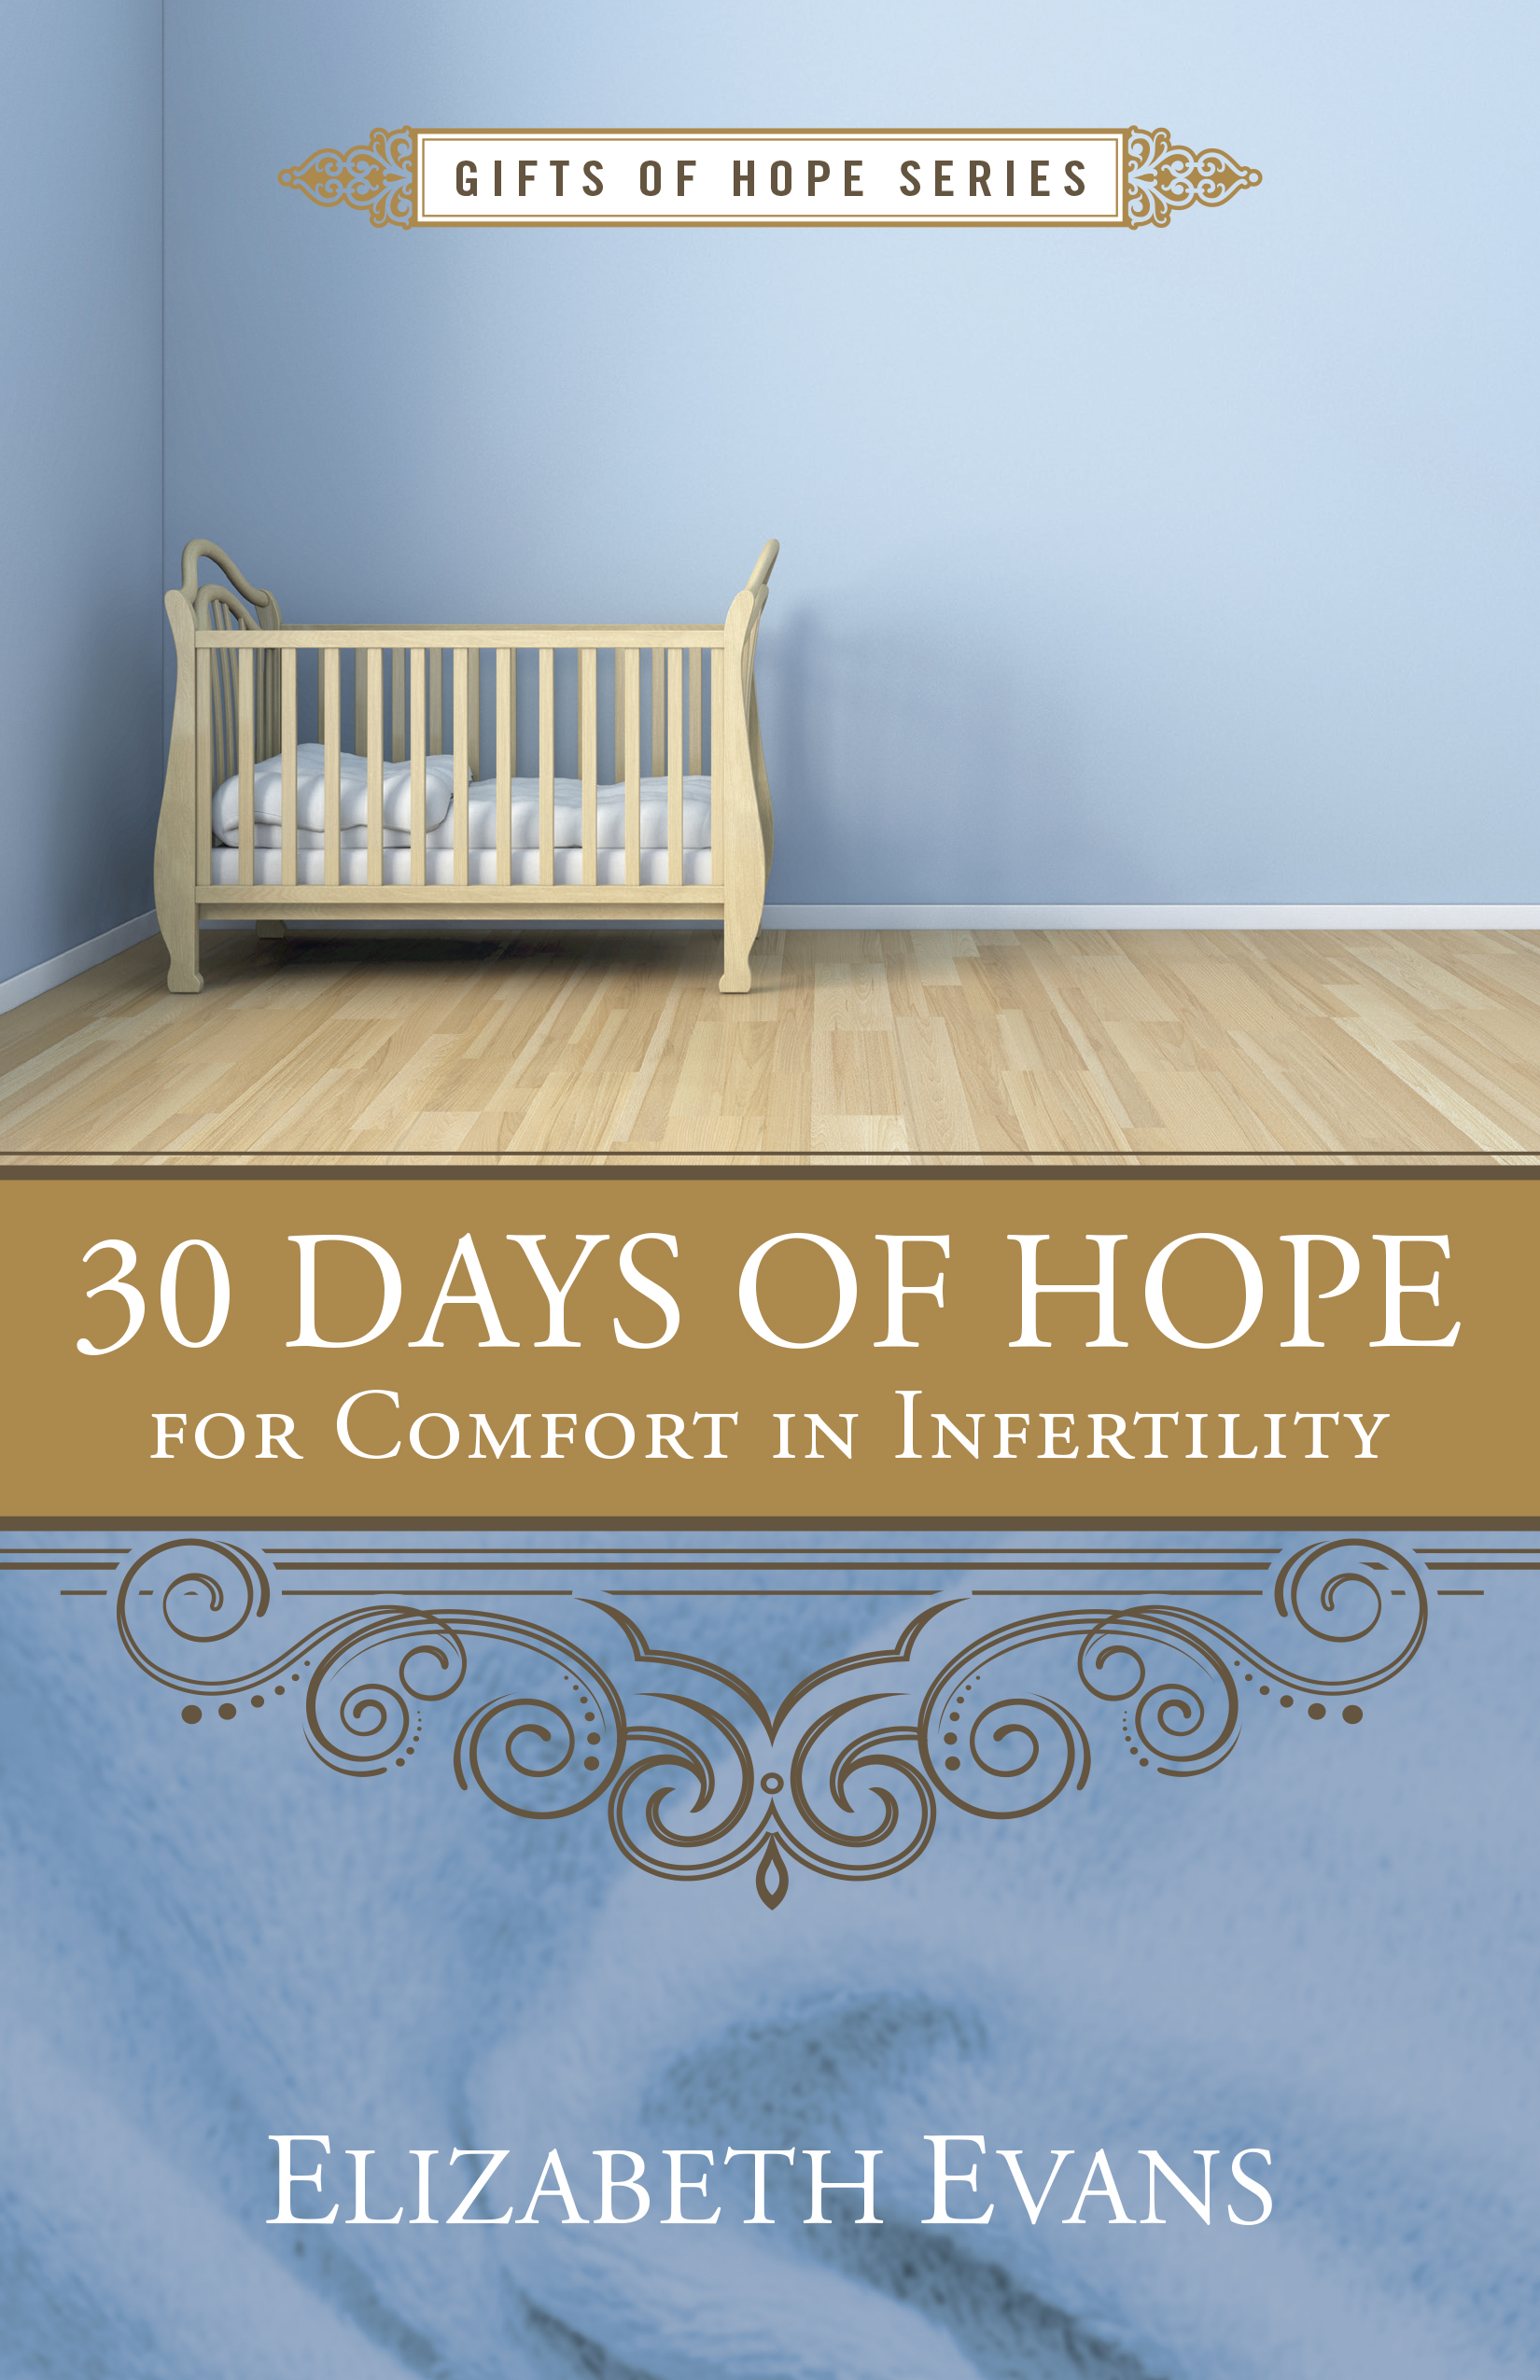 30 Days of Hope for Comfort in Infertility